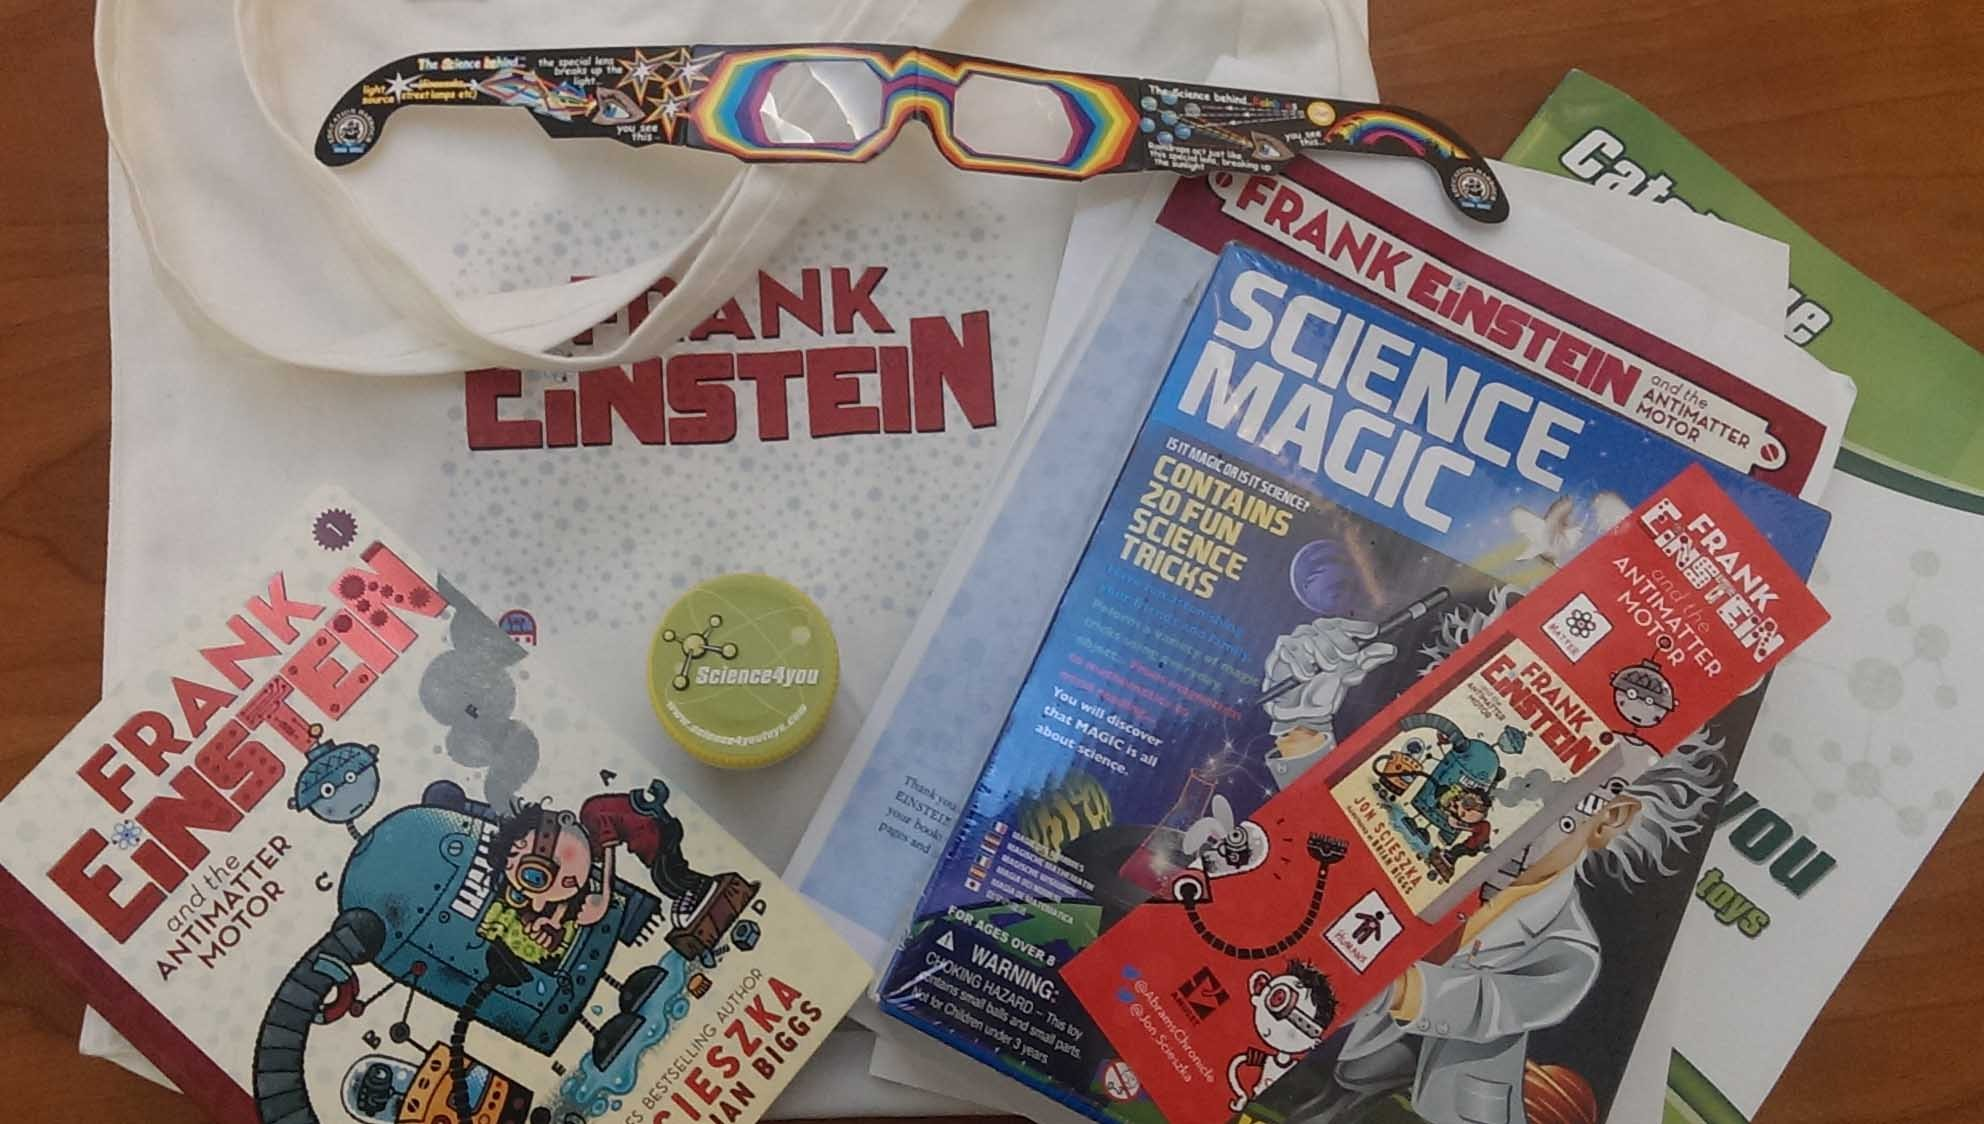 Win a signed copy of frank einstein and the antimatter for Frank einstein and the antimatter motor